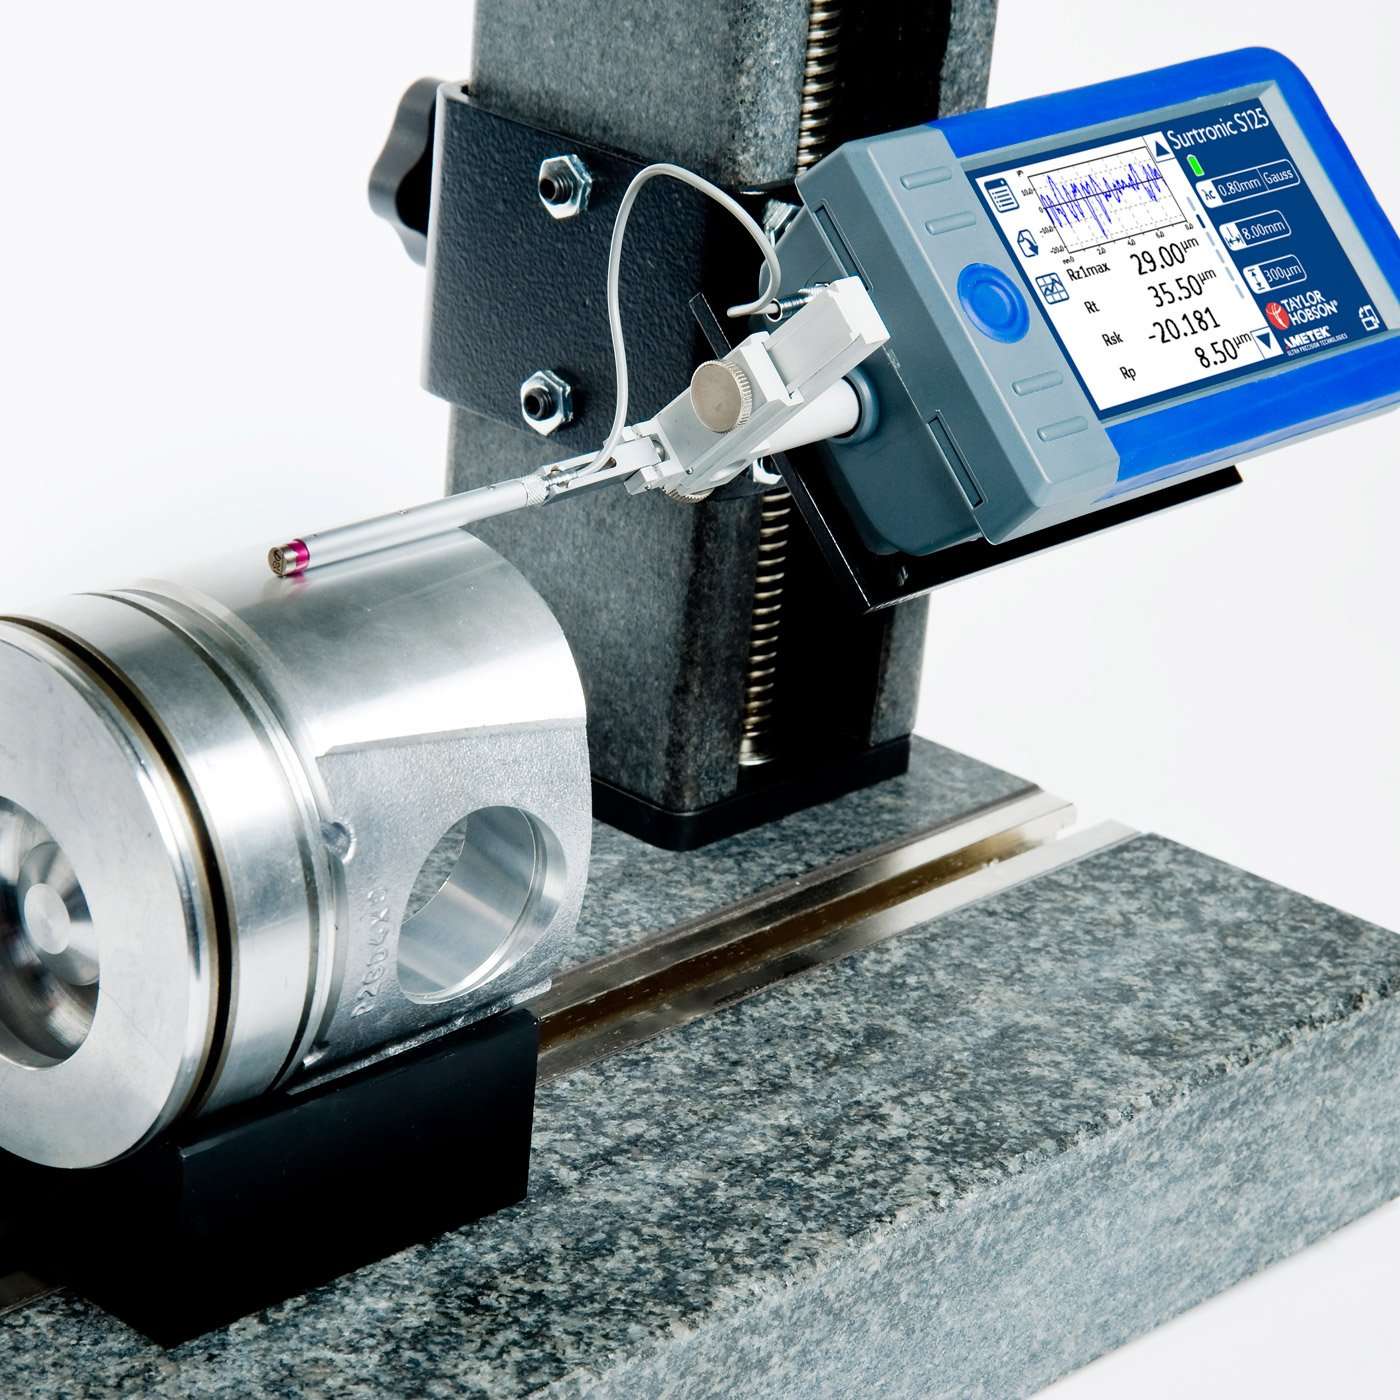 Surtronic S-100 is a fast measurement handheld surface roughness tester